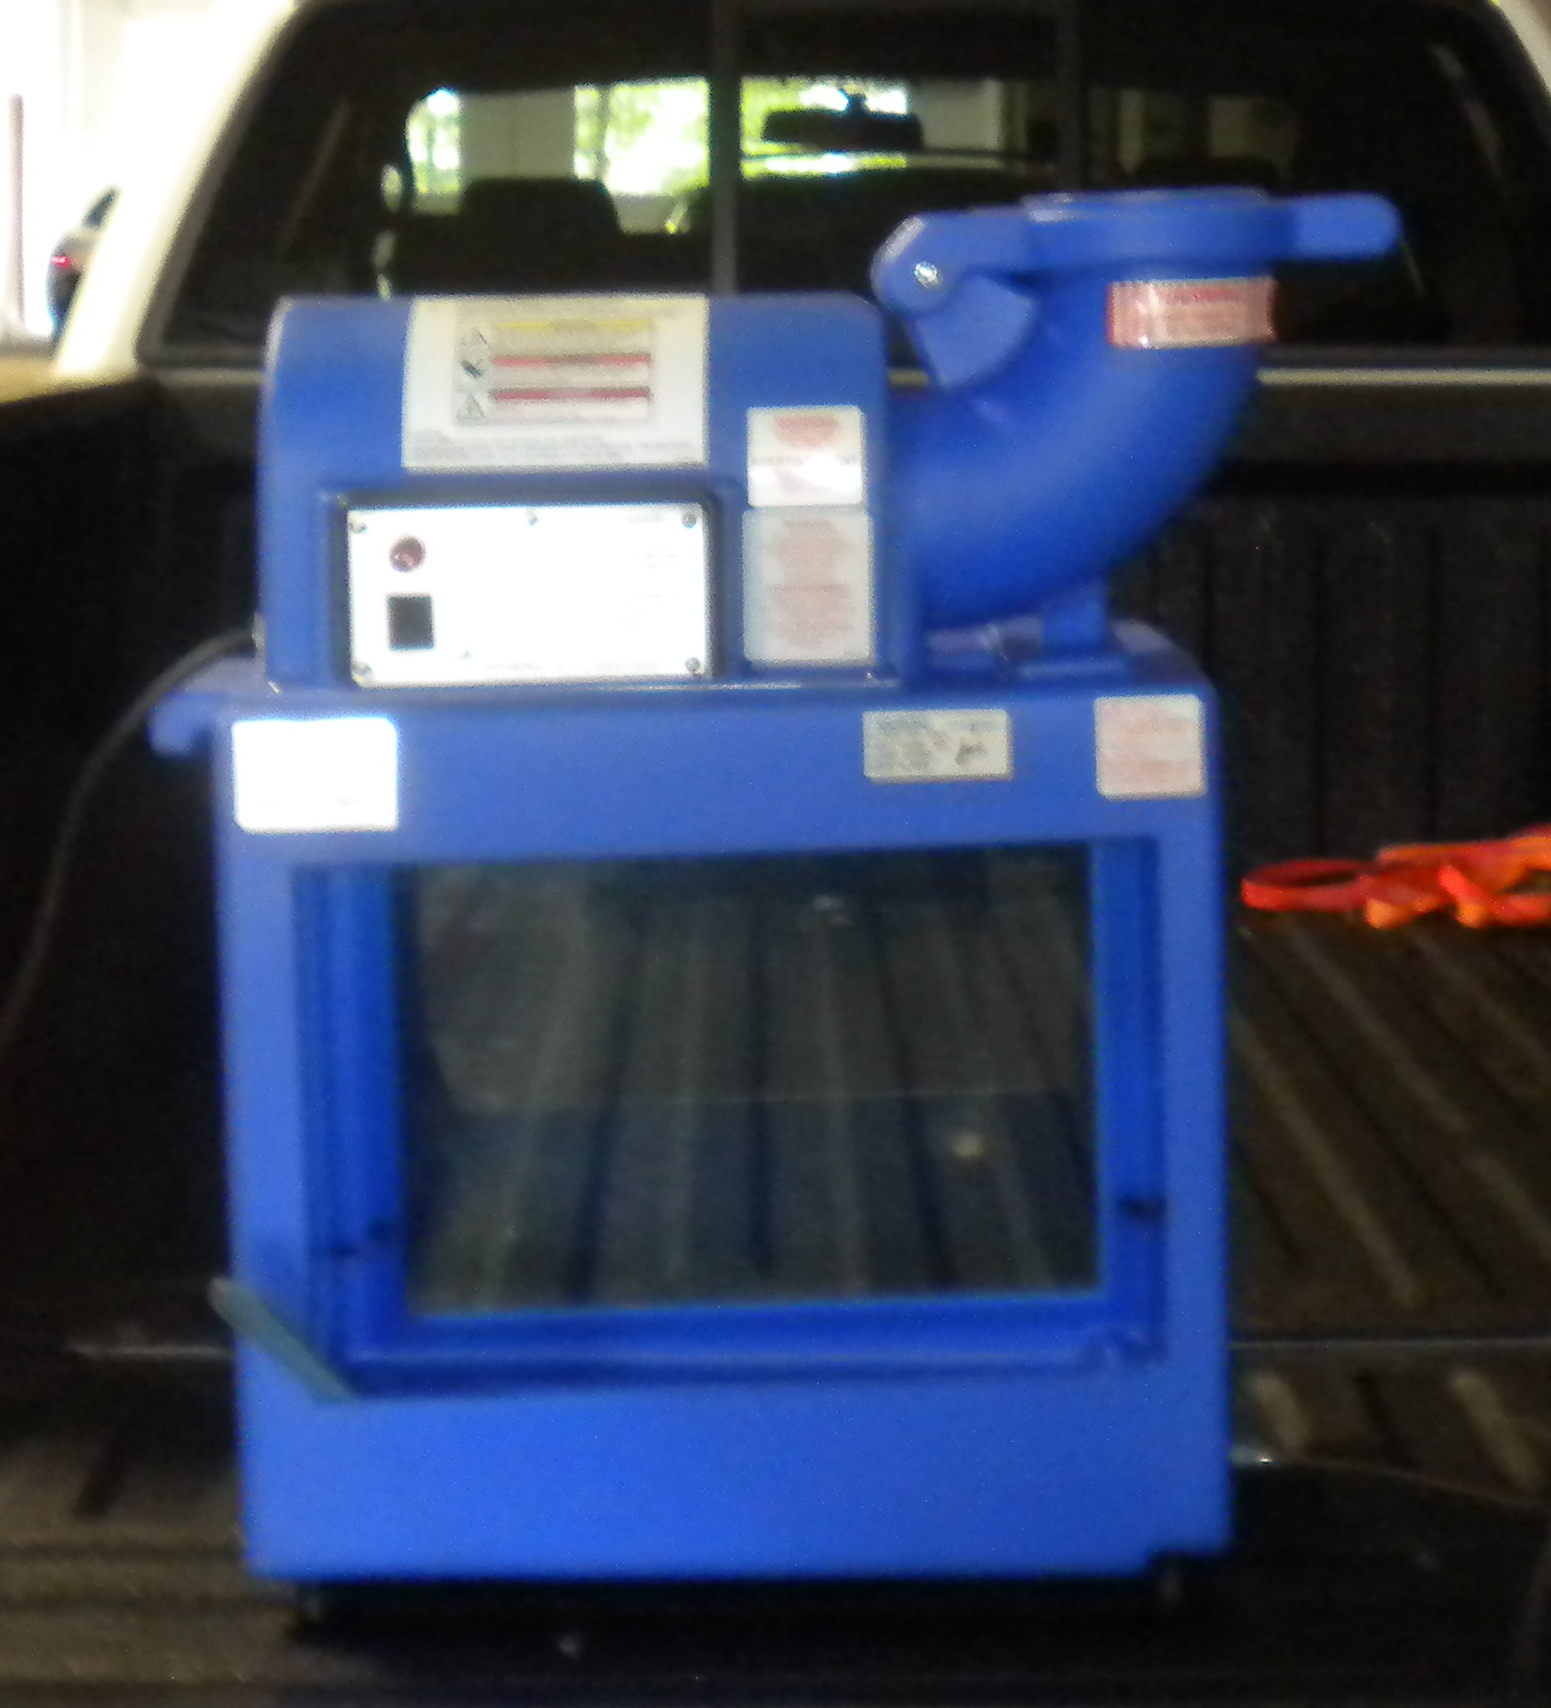 Snow Cone Machine Front View